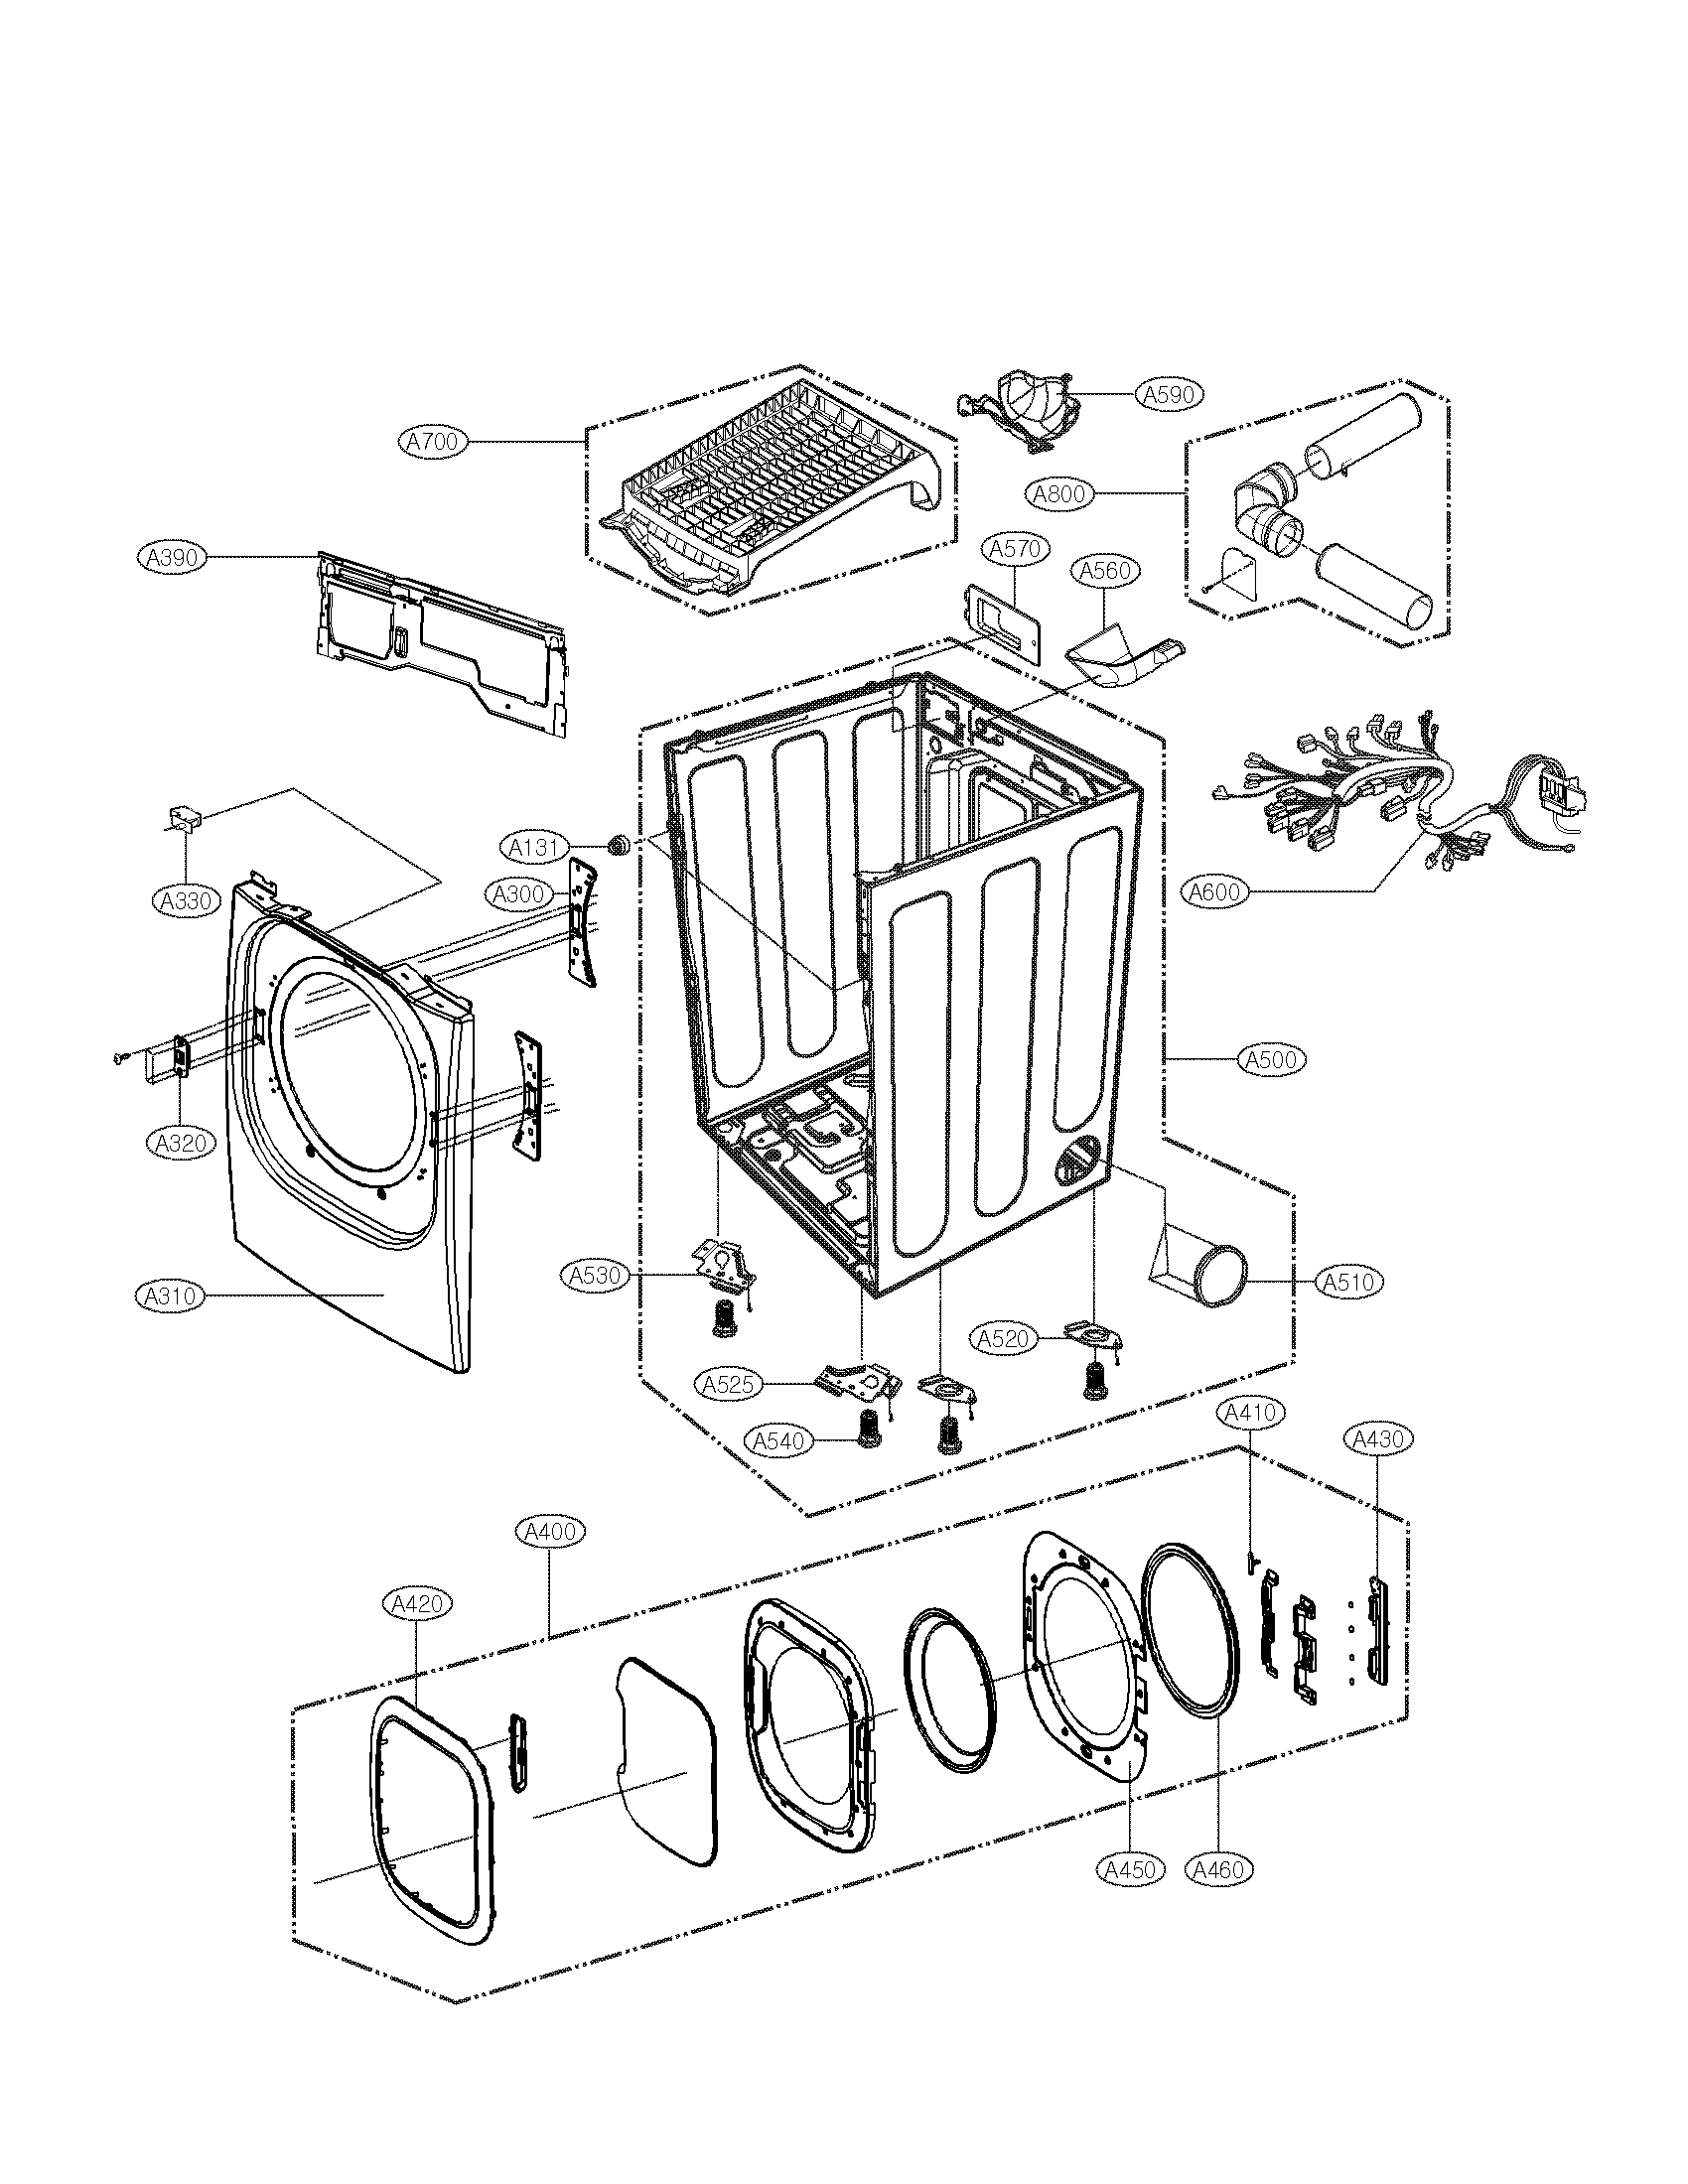 Lg model DLEX2801W residential dryer genuine parts